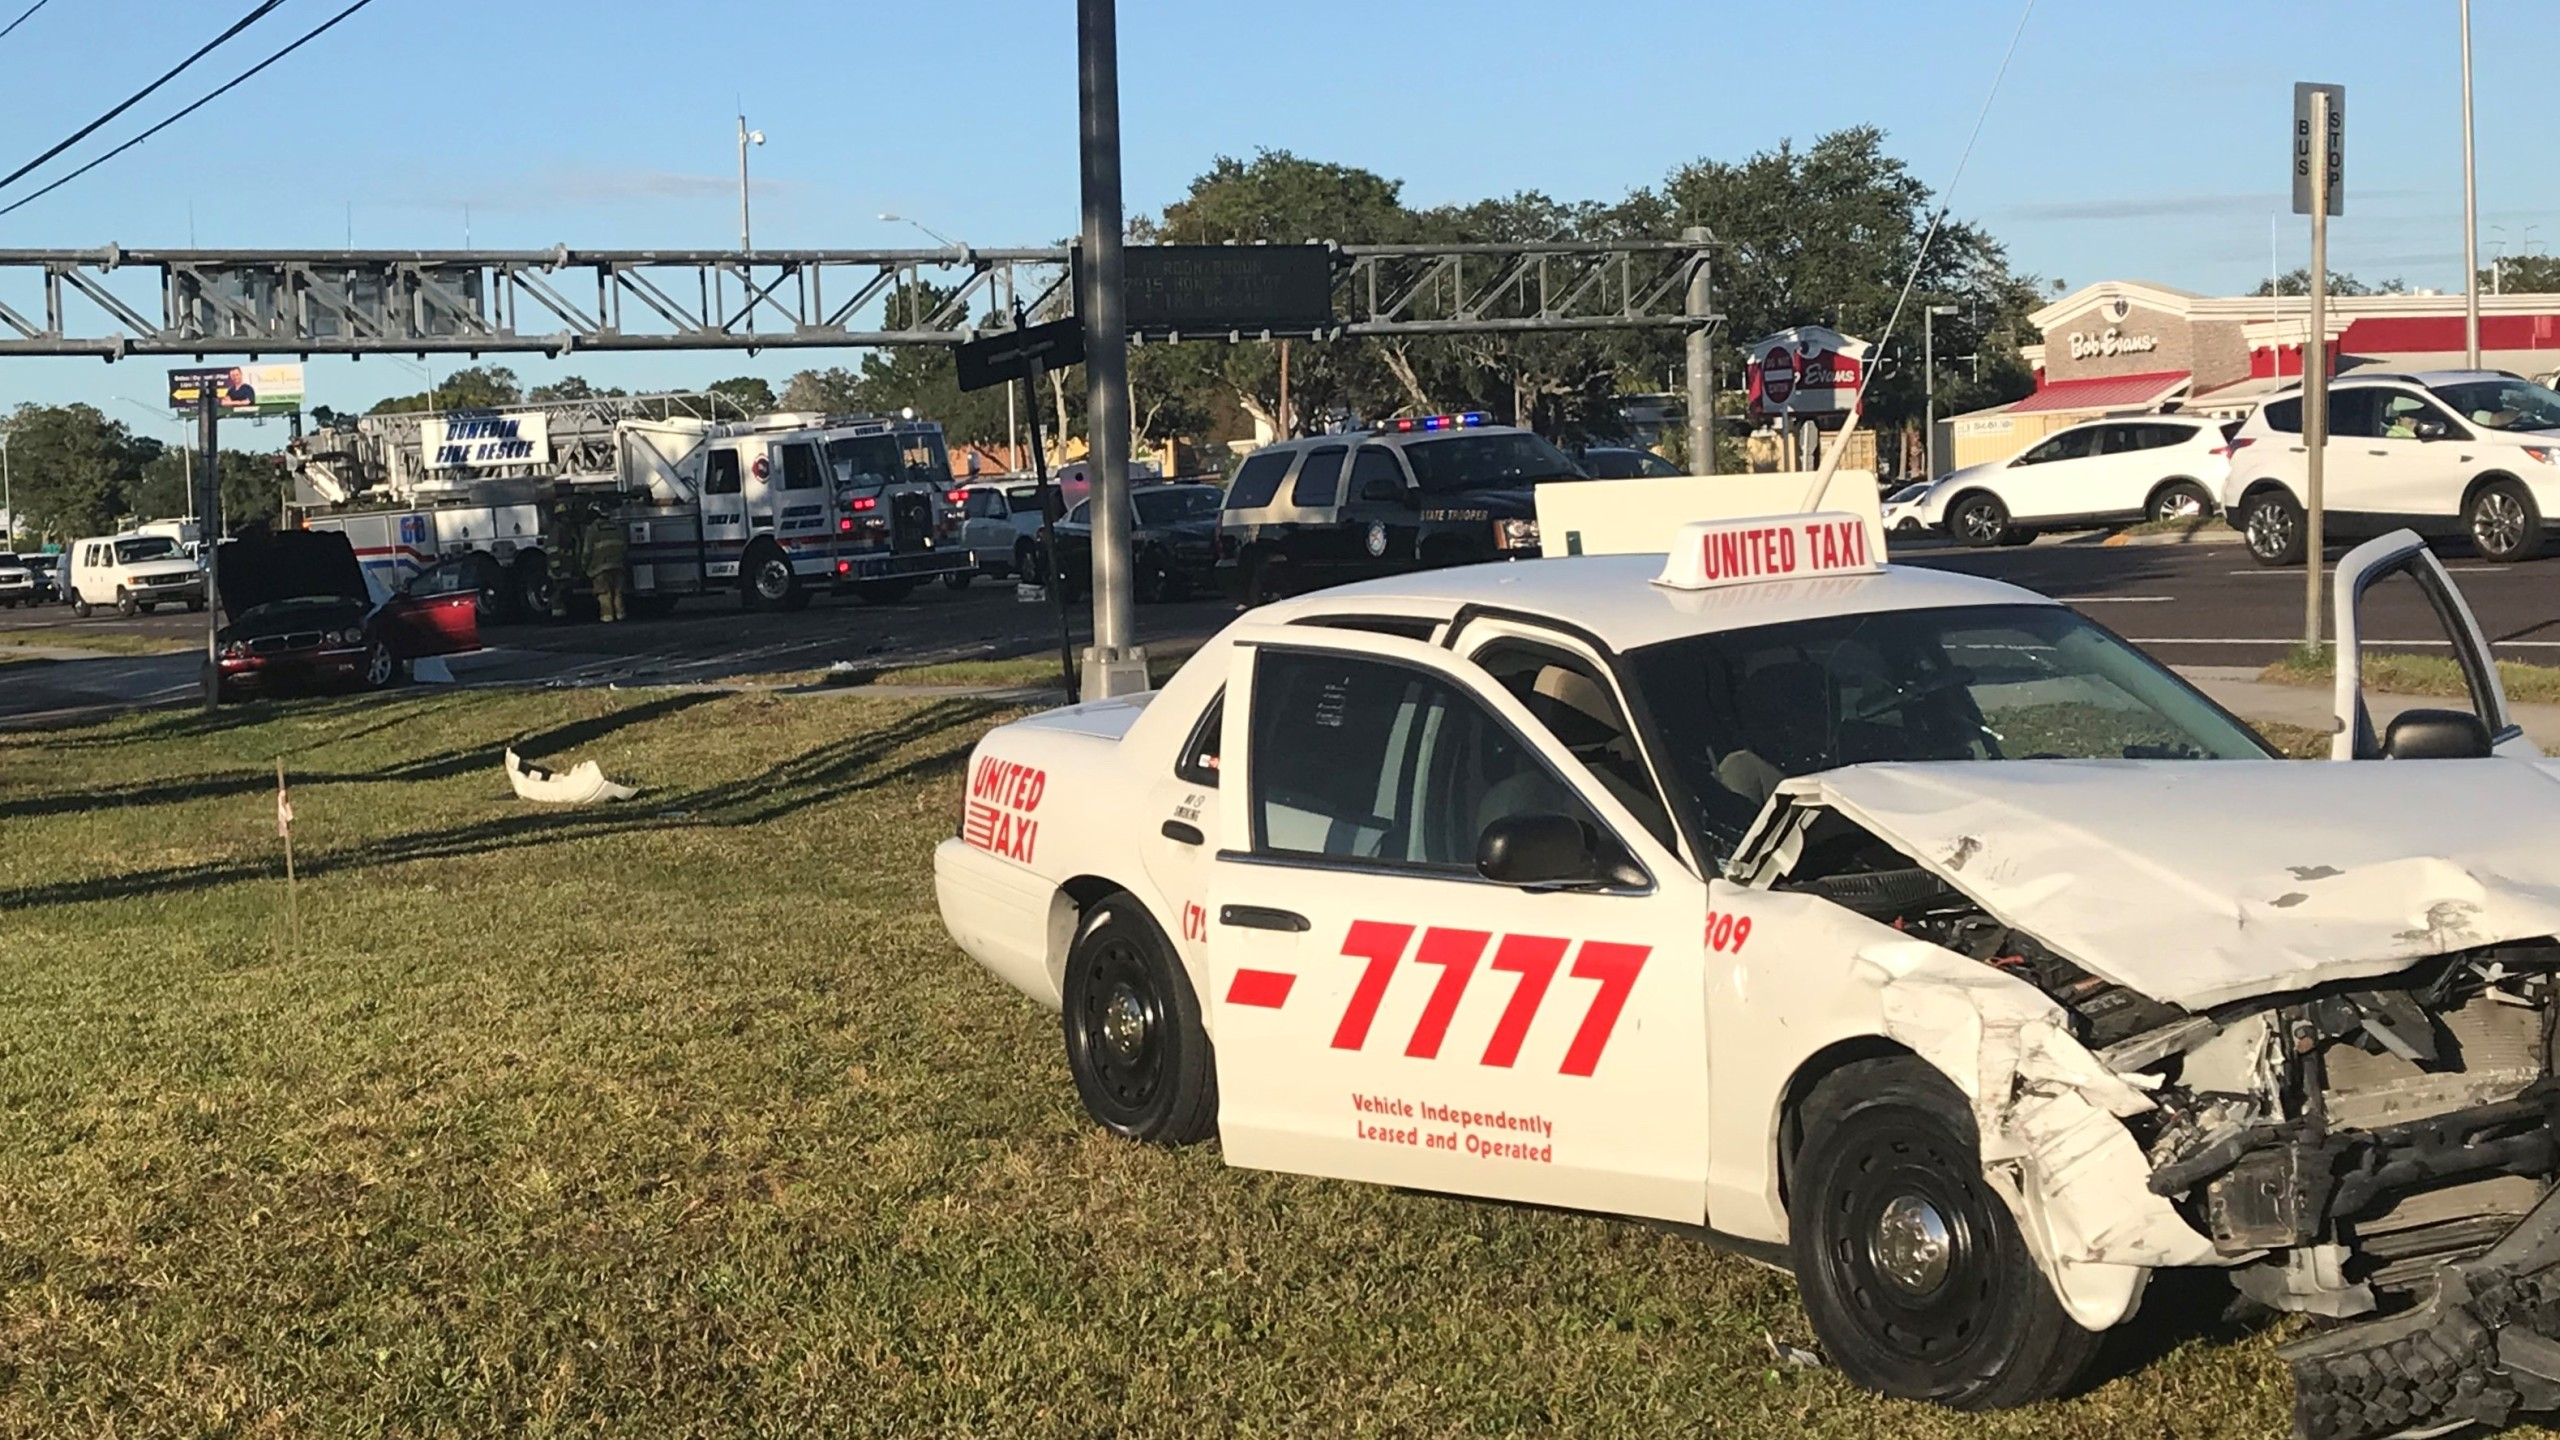 2 killed in crash on US-19 in Pinellas County